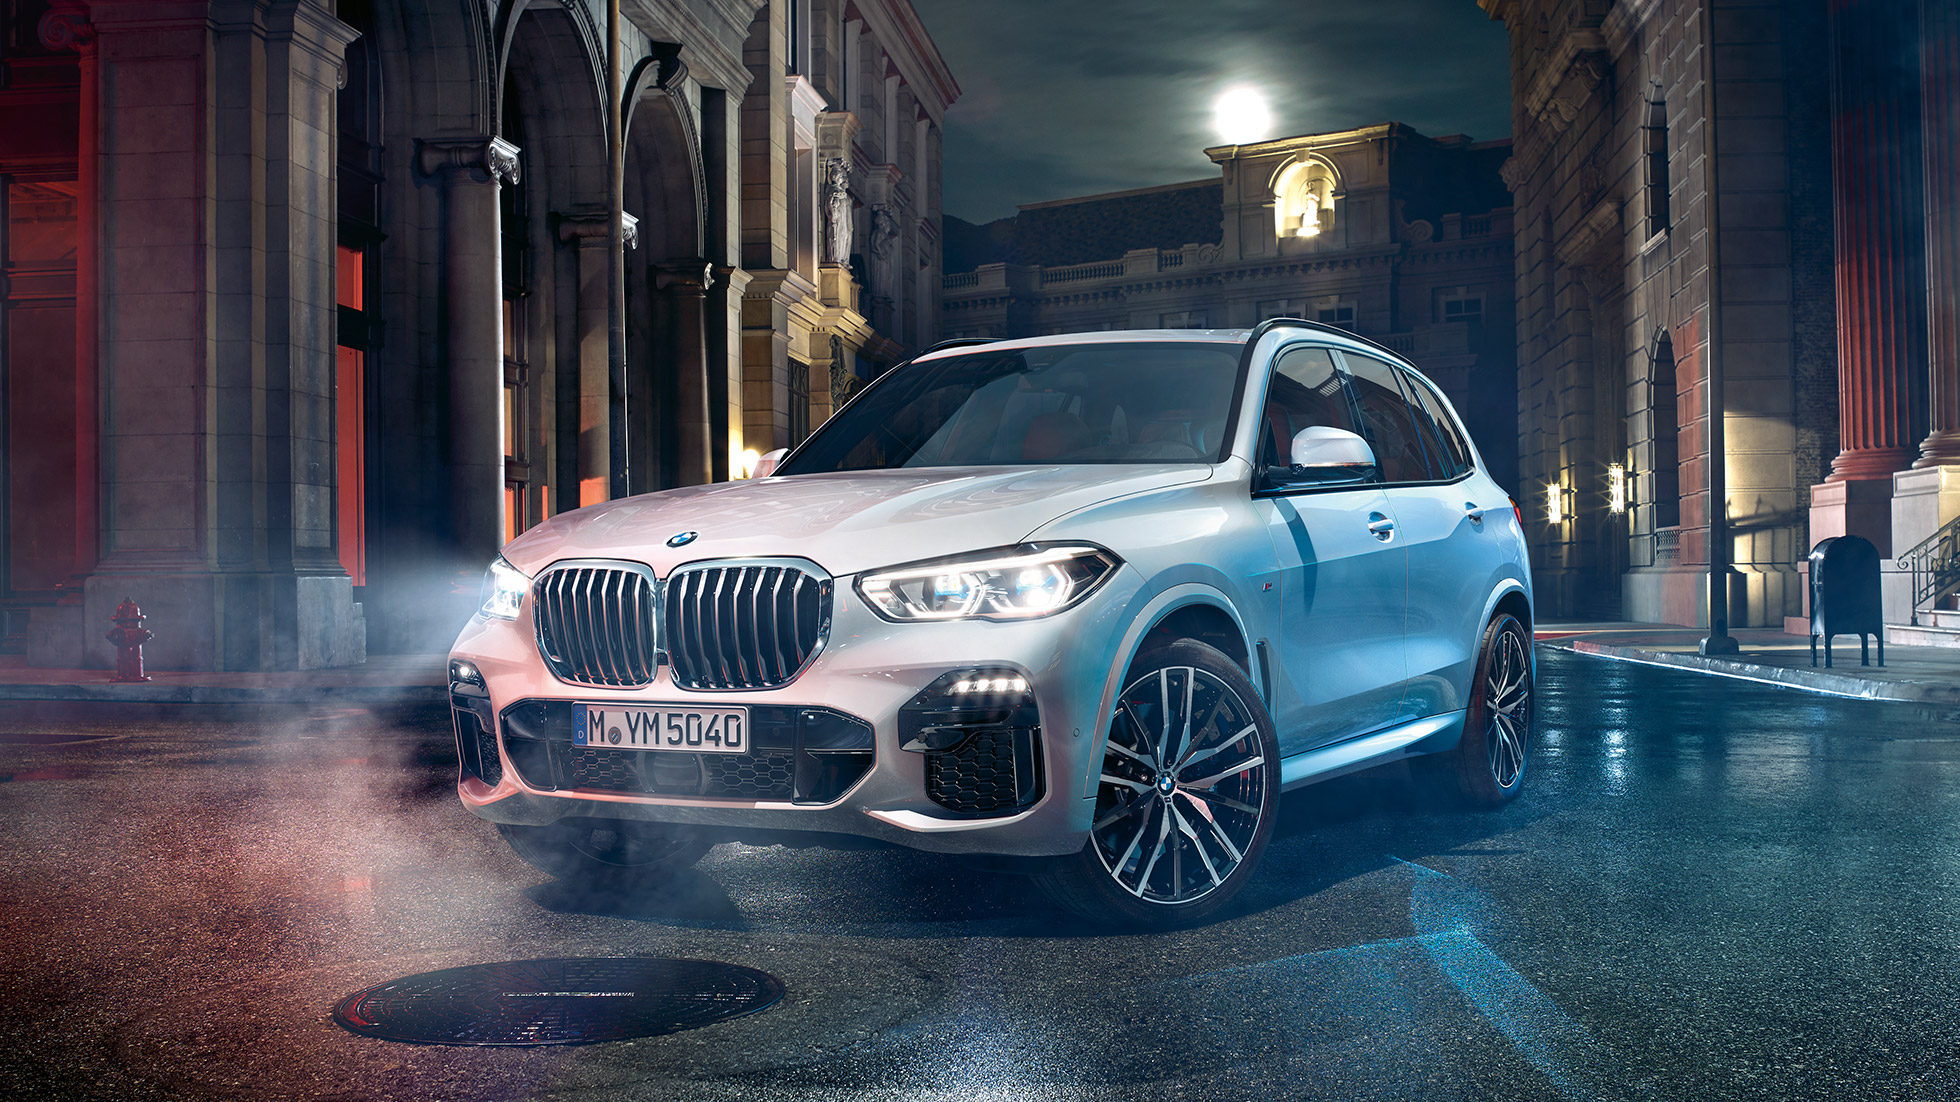 BMW X5 G05 2018 Mineral White metallic three-quarter front view standing at night